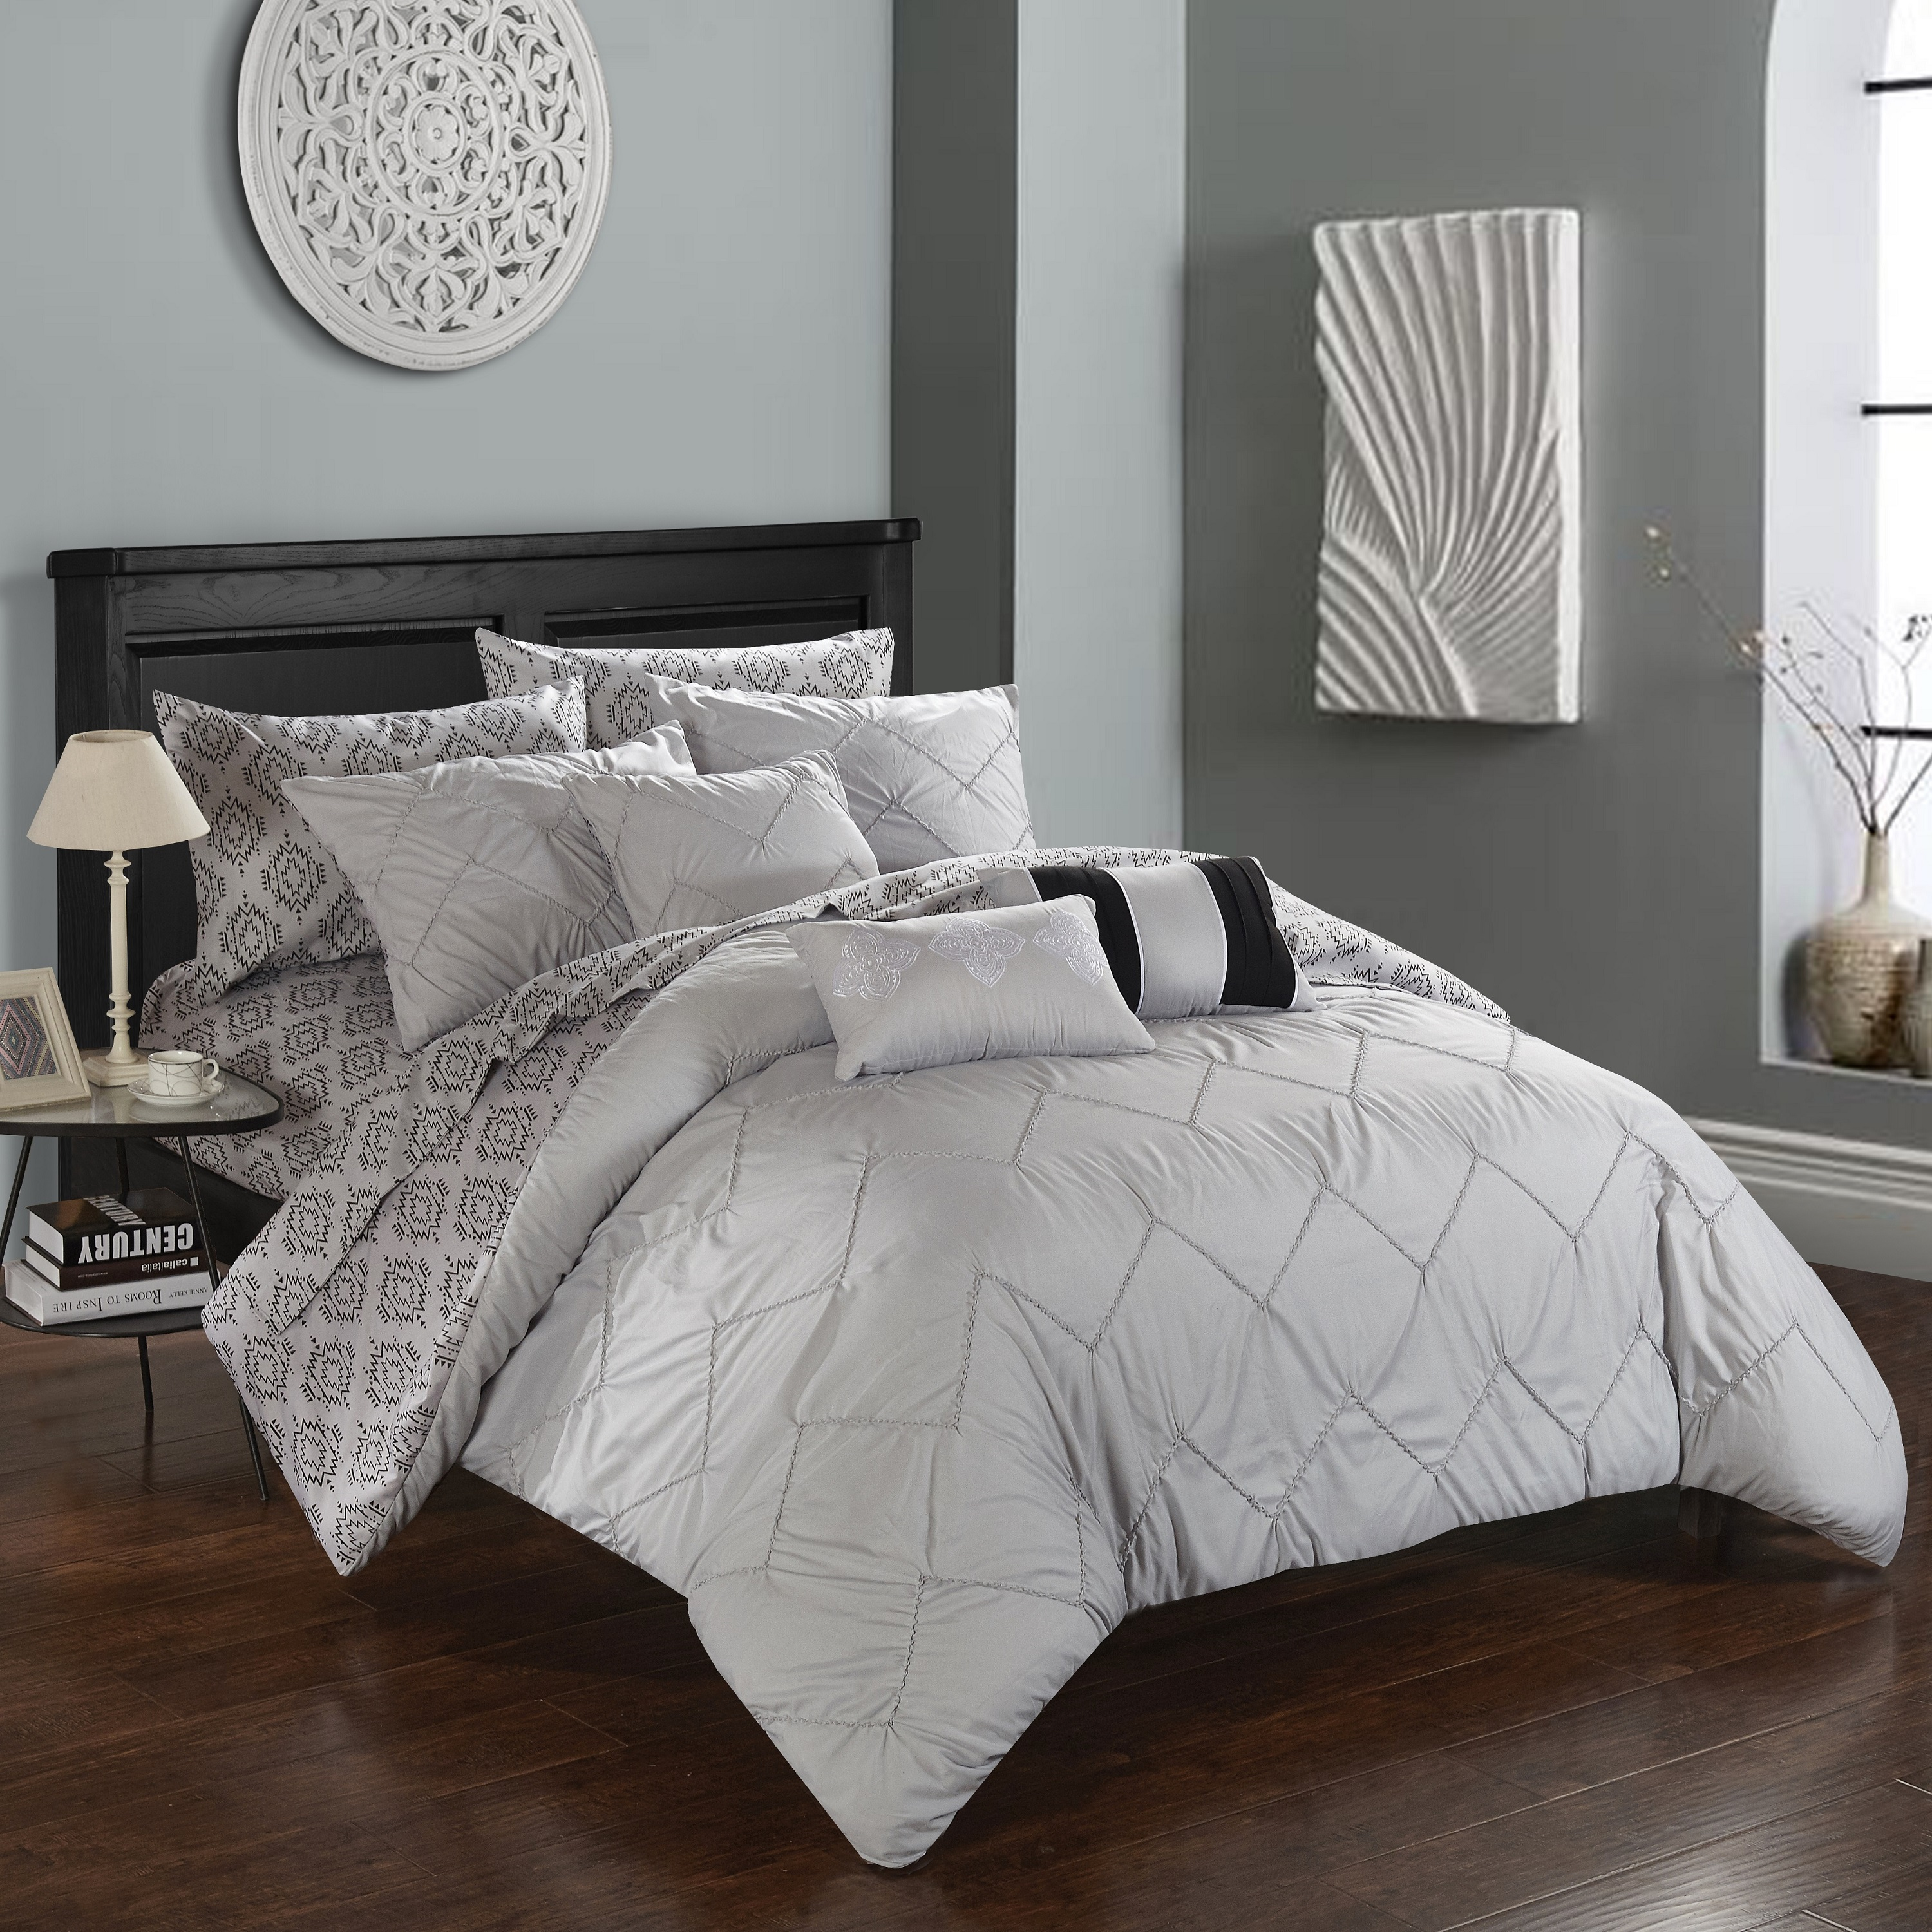 Chic Home 10 Piece Darlene Reversible Bed in a Bag Bedding Set